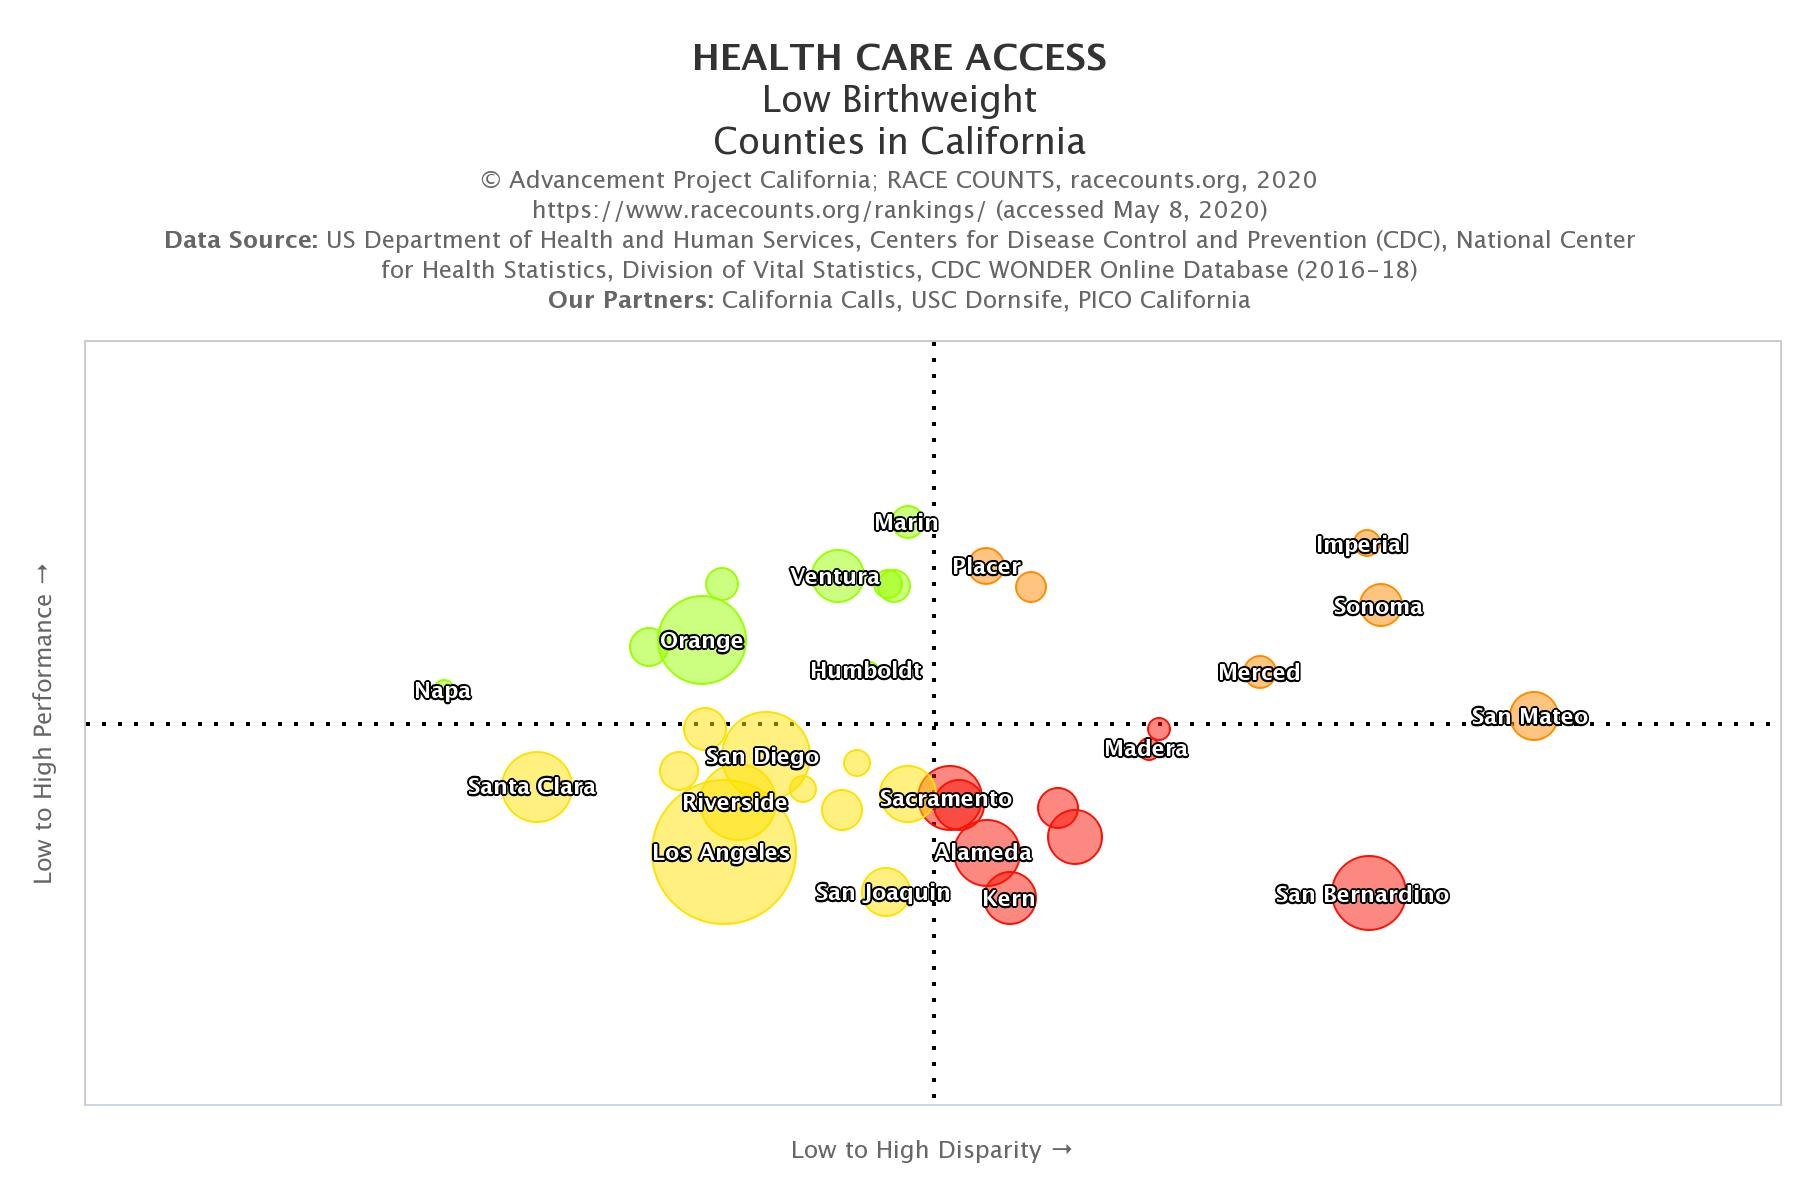 racecounts-health-care-access-low-birthweight-counties